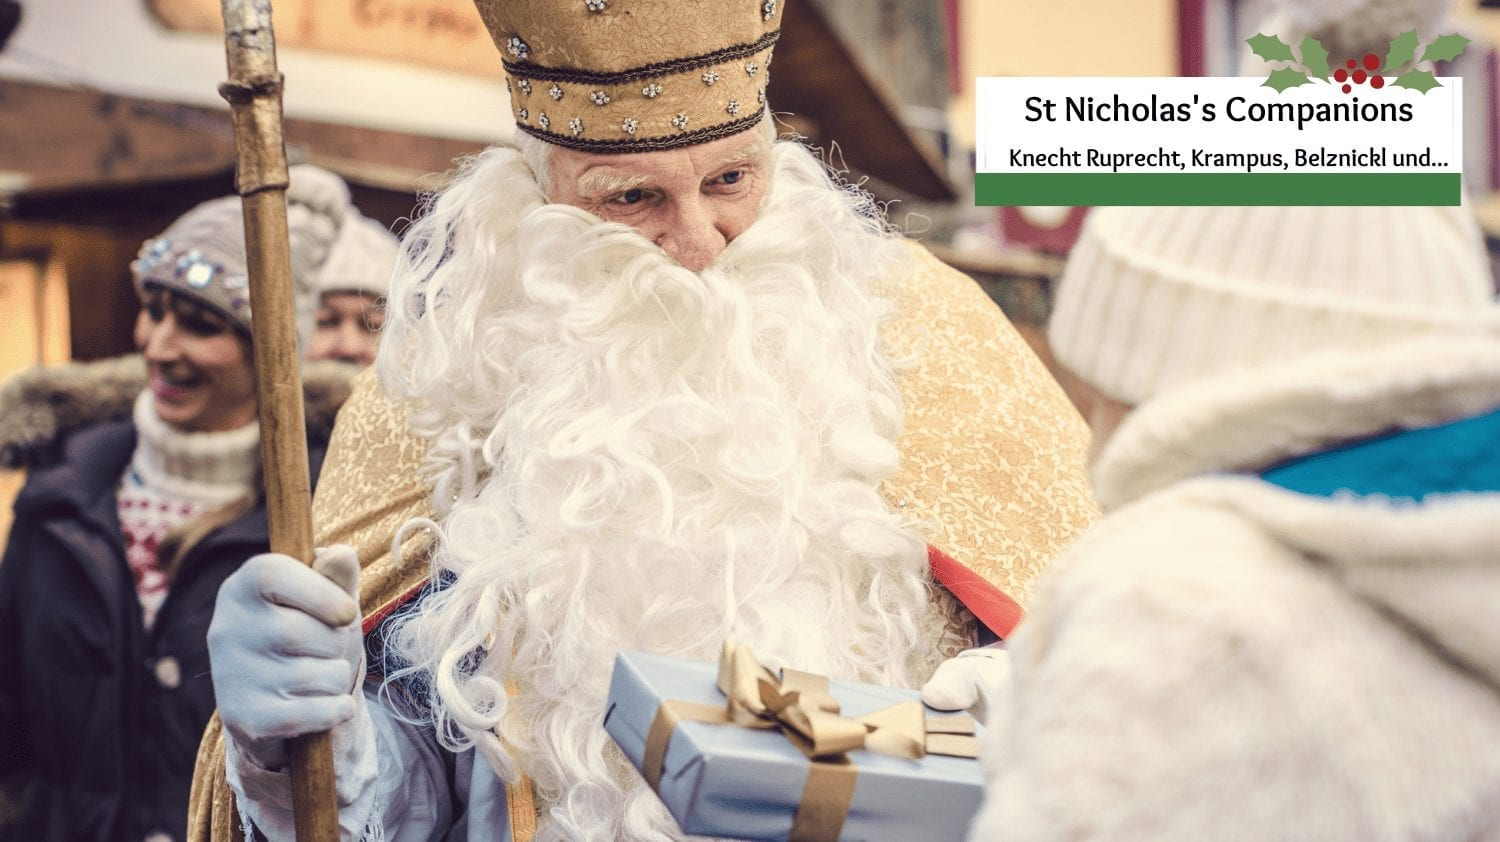 Who are the Companions St Nicholas Travels With?